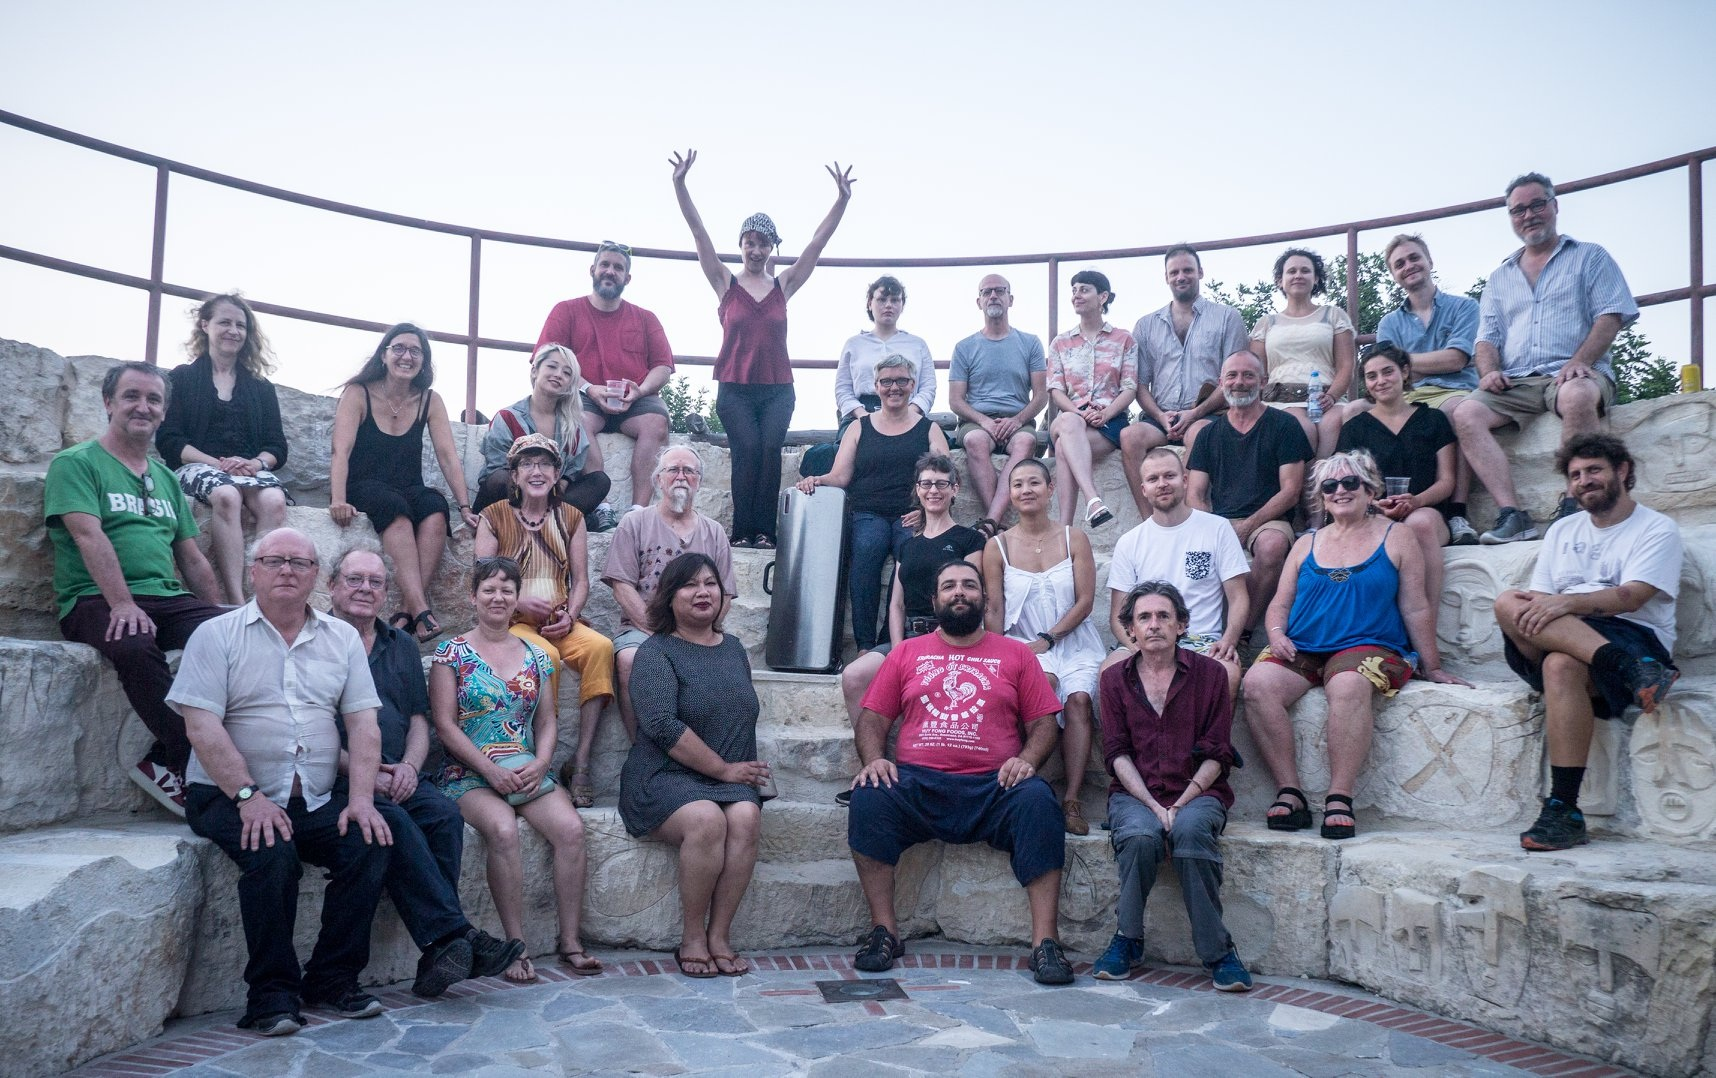 XFest Cyprus performers and organizers - photo by Adrian Northover